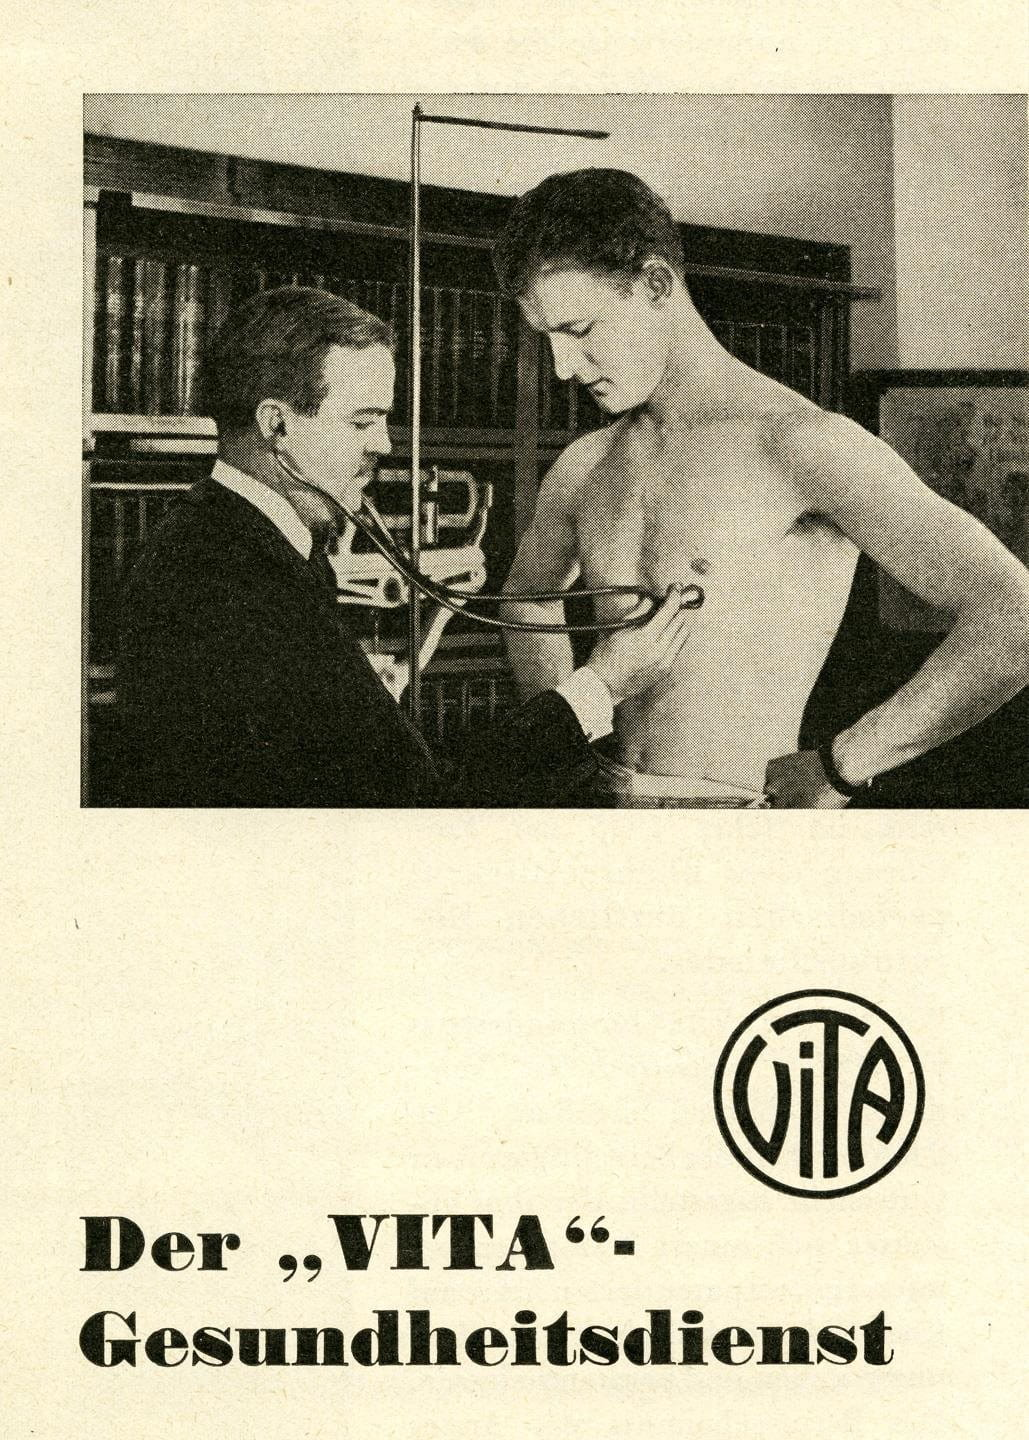 1925: Vita introduces medical check-ups